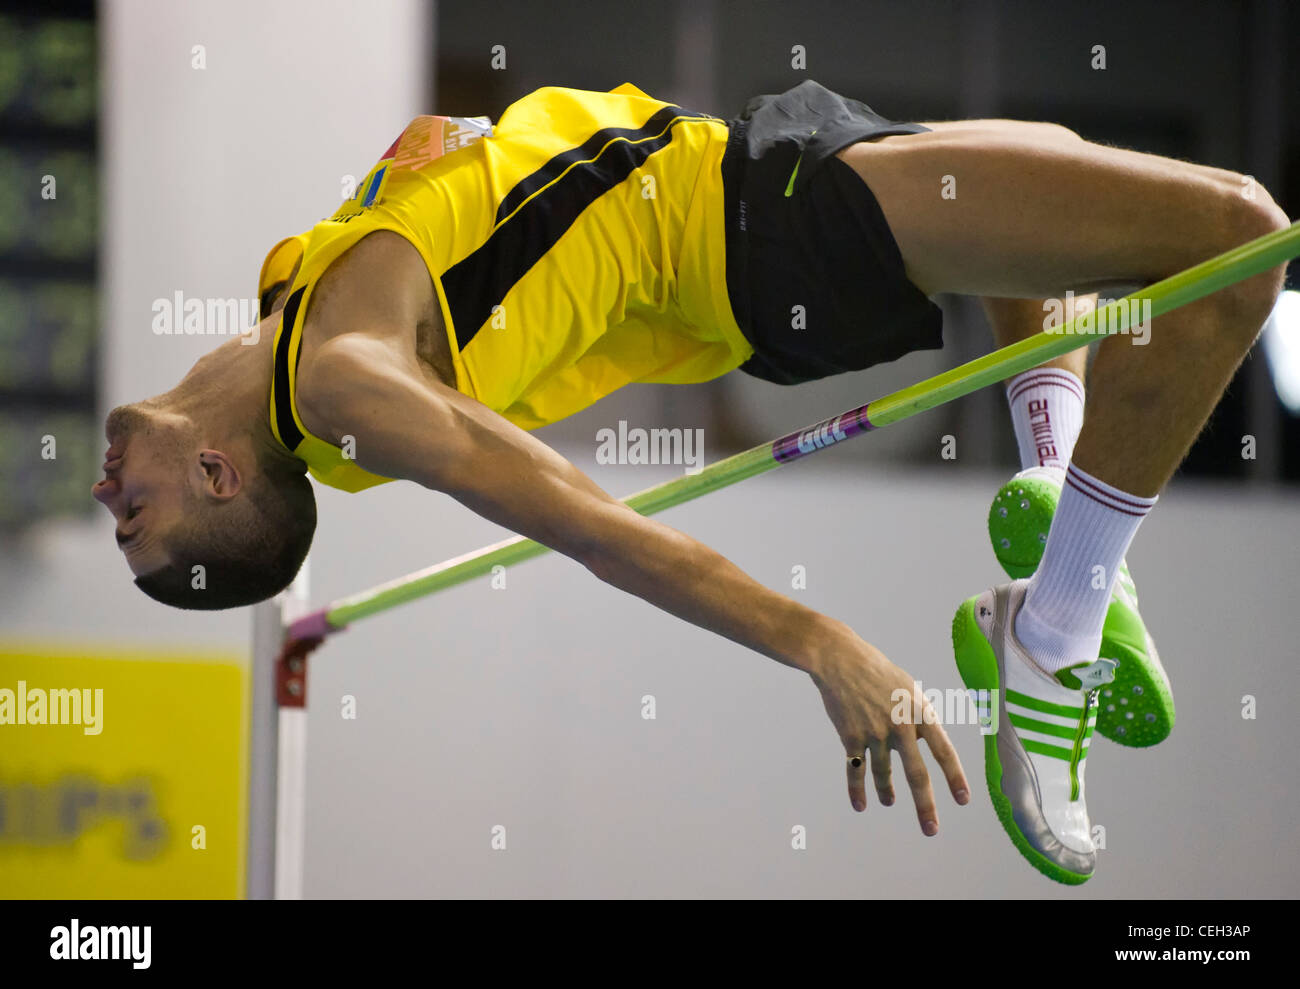 Robbie Krabarz competing in the men's high jump final at the Aviva Indoor UK Trials and Championships - Stock Image